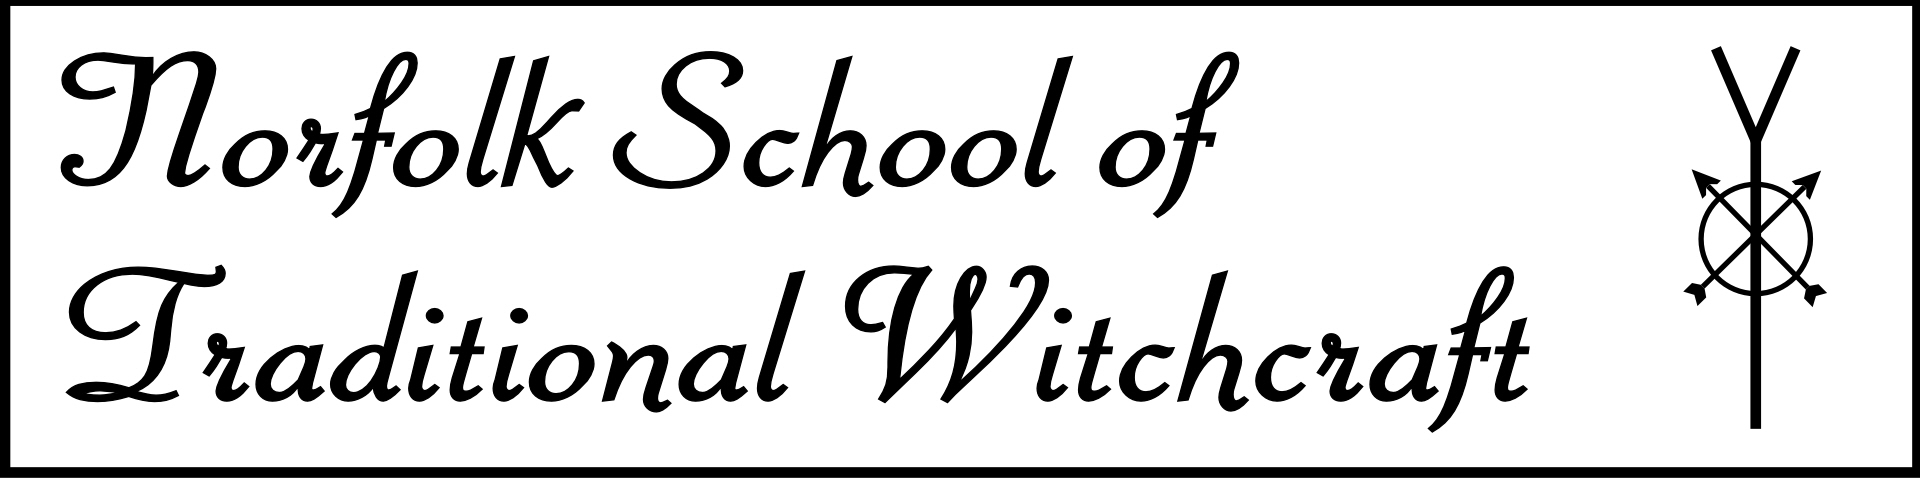 Norfolk School of Traditional Witchcraft logo